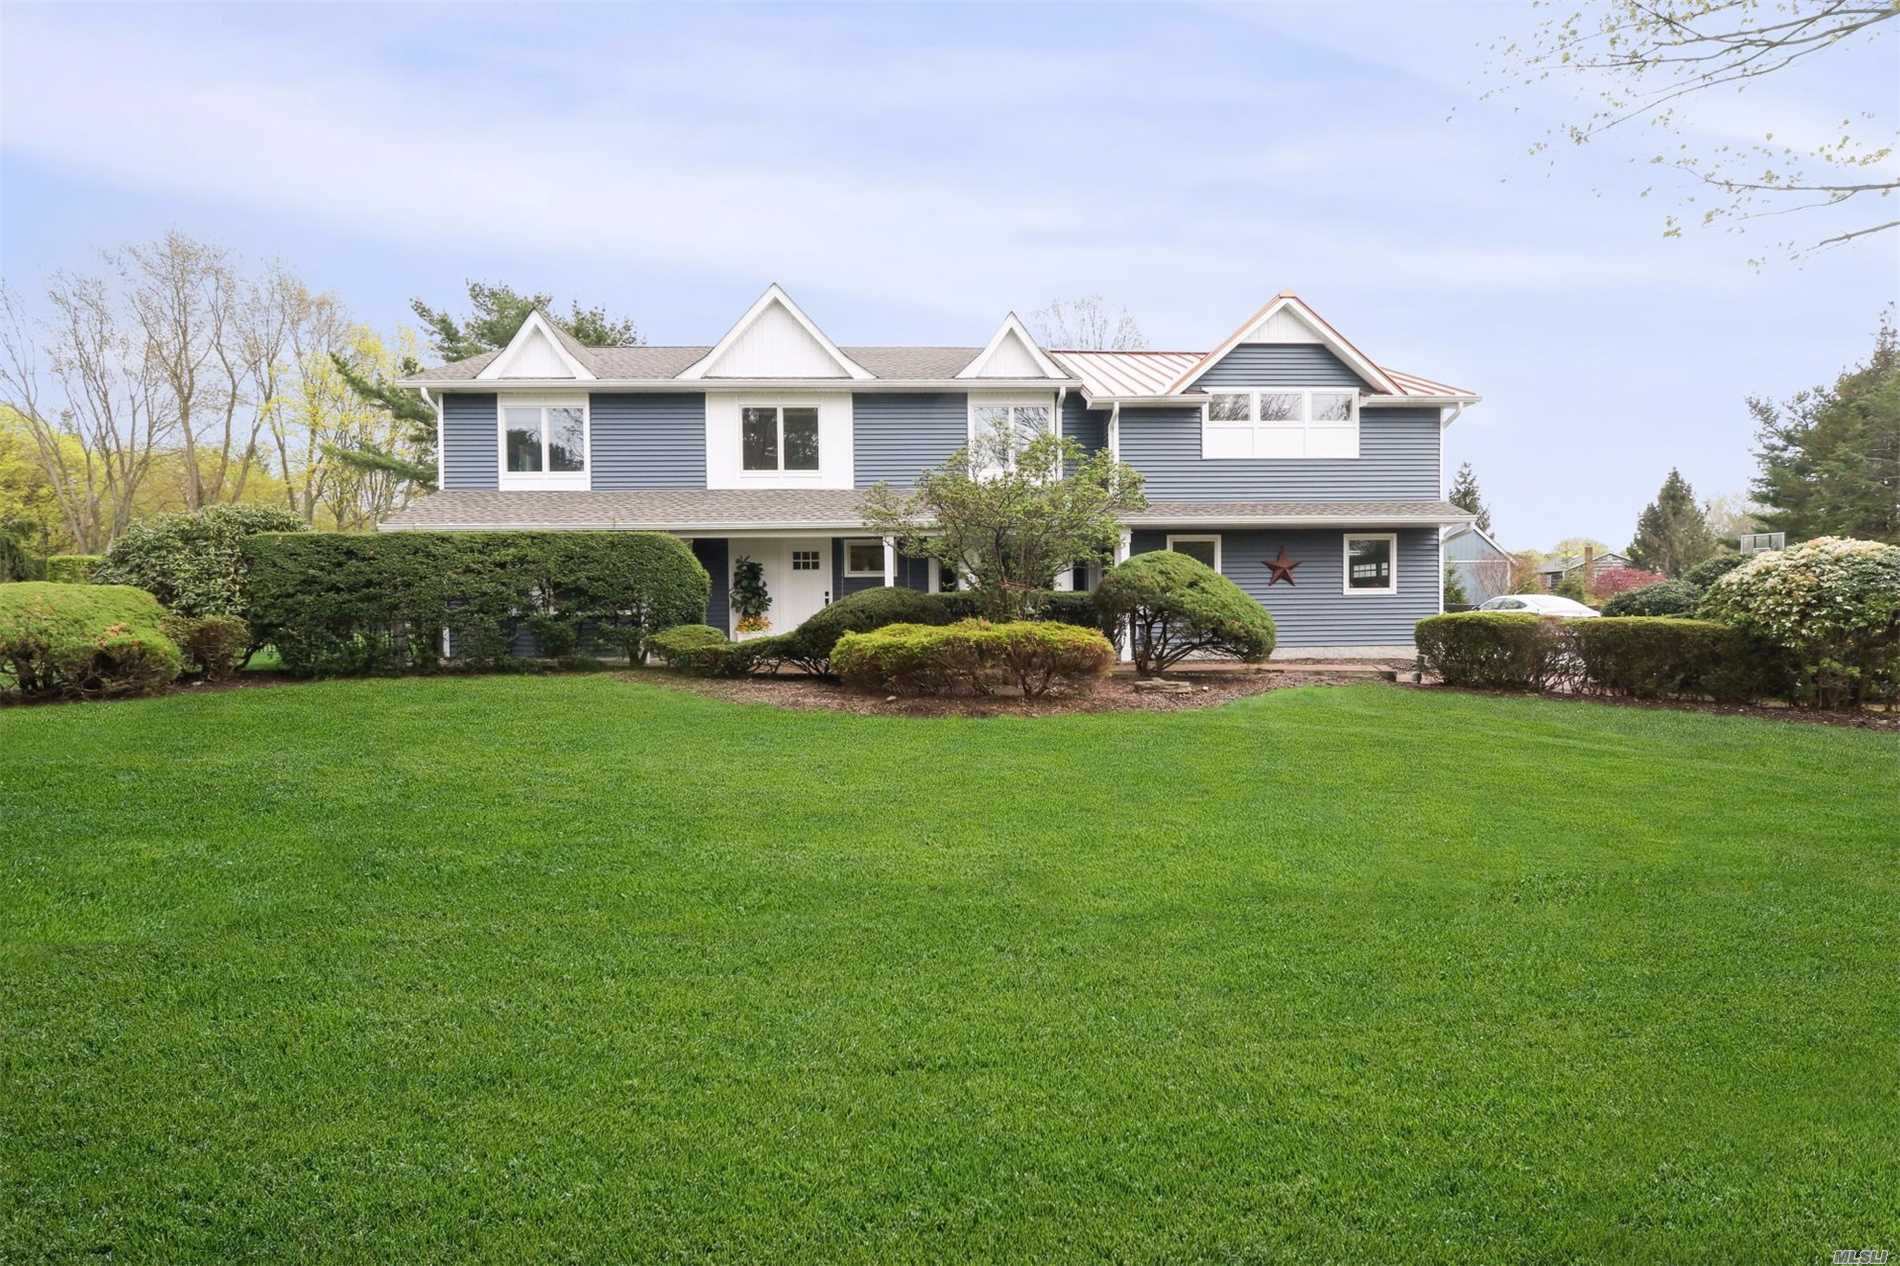 This is the one you have been waiting for. Perfect location in the Blue Ribbon Elwood schools on a flat acre. Completely redone home from top to bottom including a master suite extension. No expense was spared & no detail overlooked in creating their dream home. There are too many things to list! please see the attachments for highlight sheet. Steam & waterfall shower w/ radiant heated floors in master bath, huge master bedroom, great rm, 25x40 paper patio to mention a few.